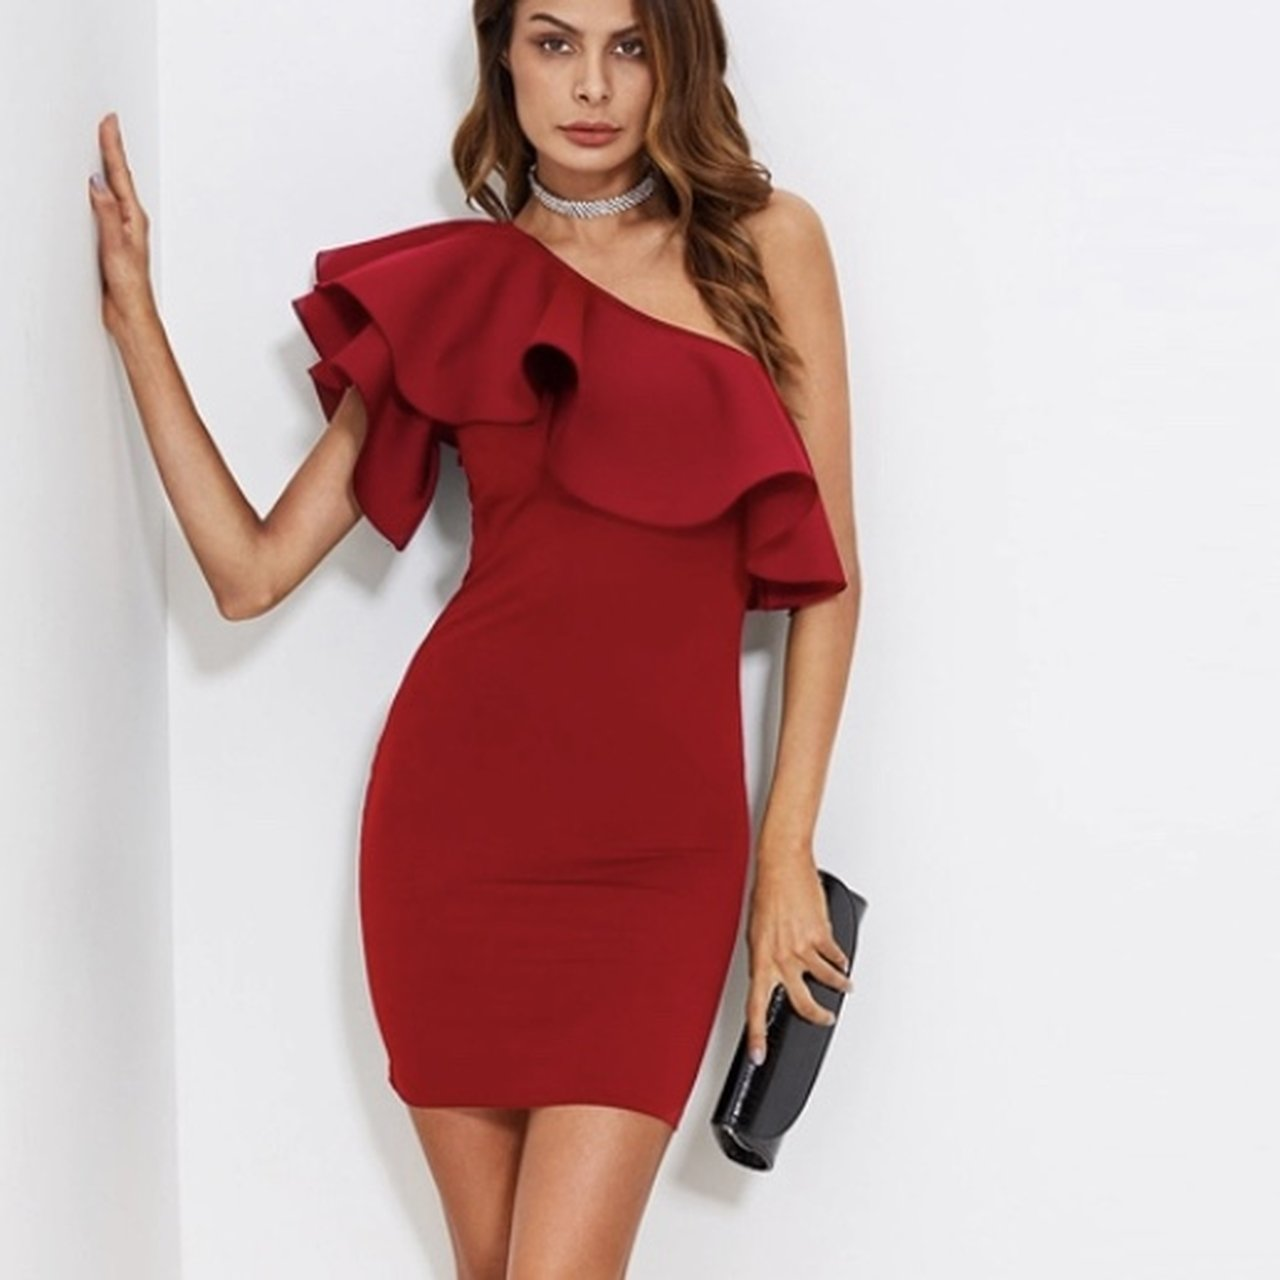 5eb1154383c7 One Shoulder Red Dress – Fashion dresses